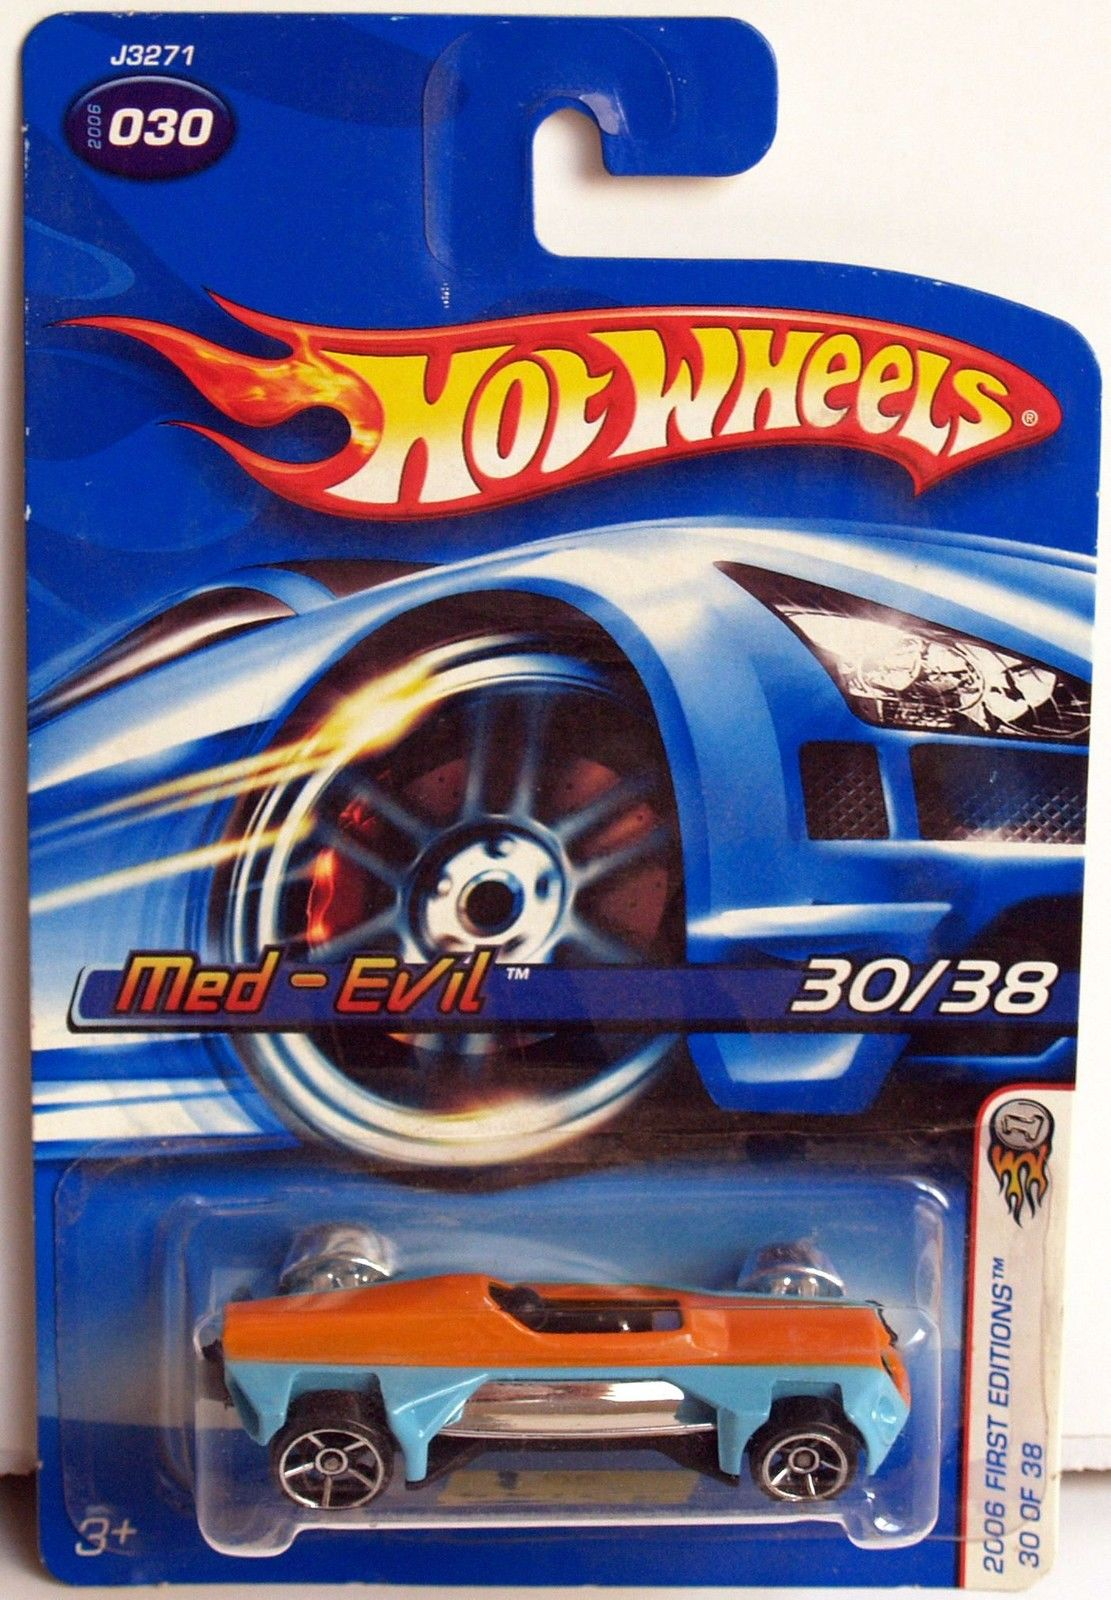 HOT WHEELS 2006 FIRST EDITIONS MED-EVIL #030 E+